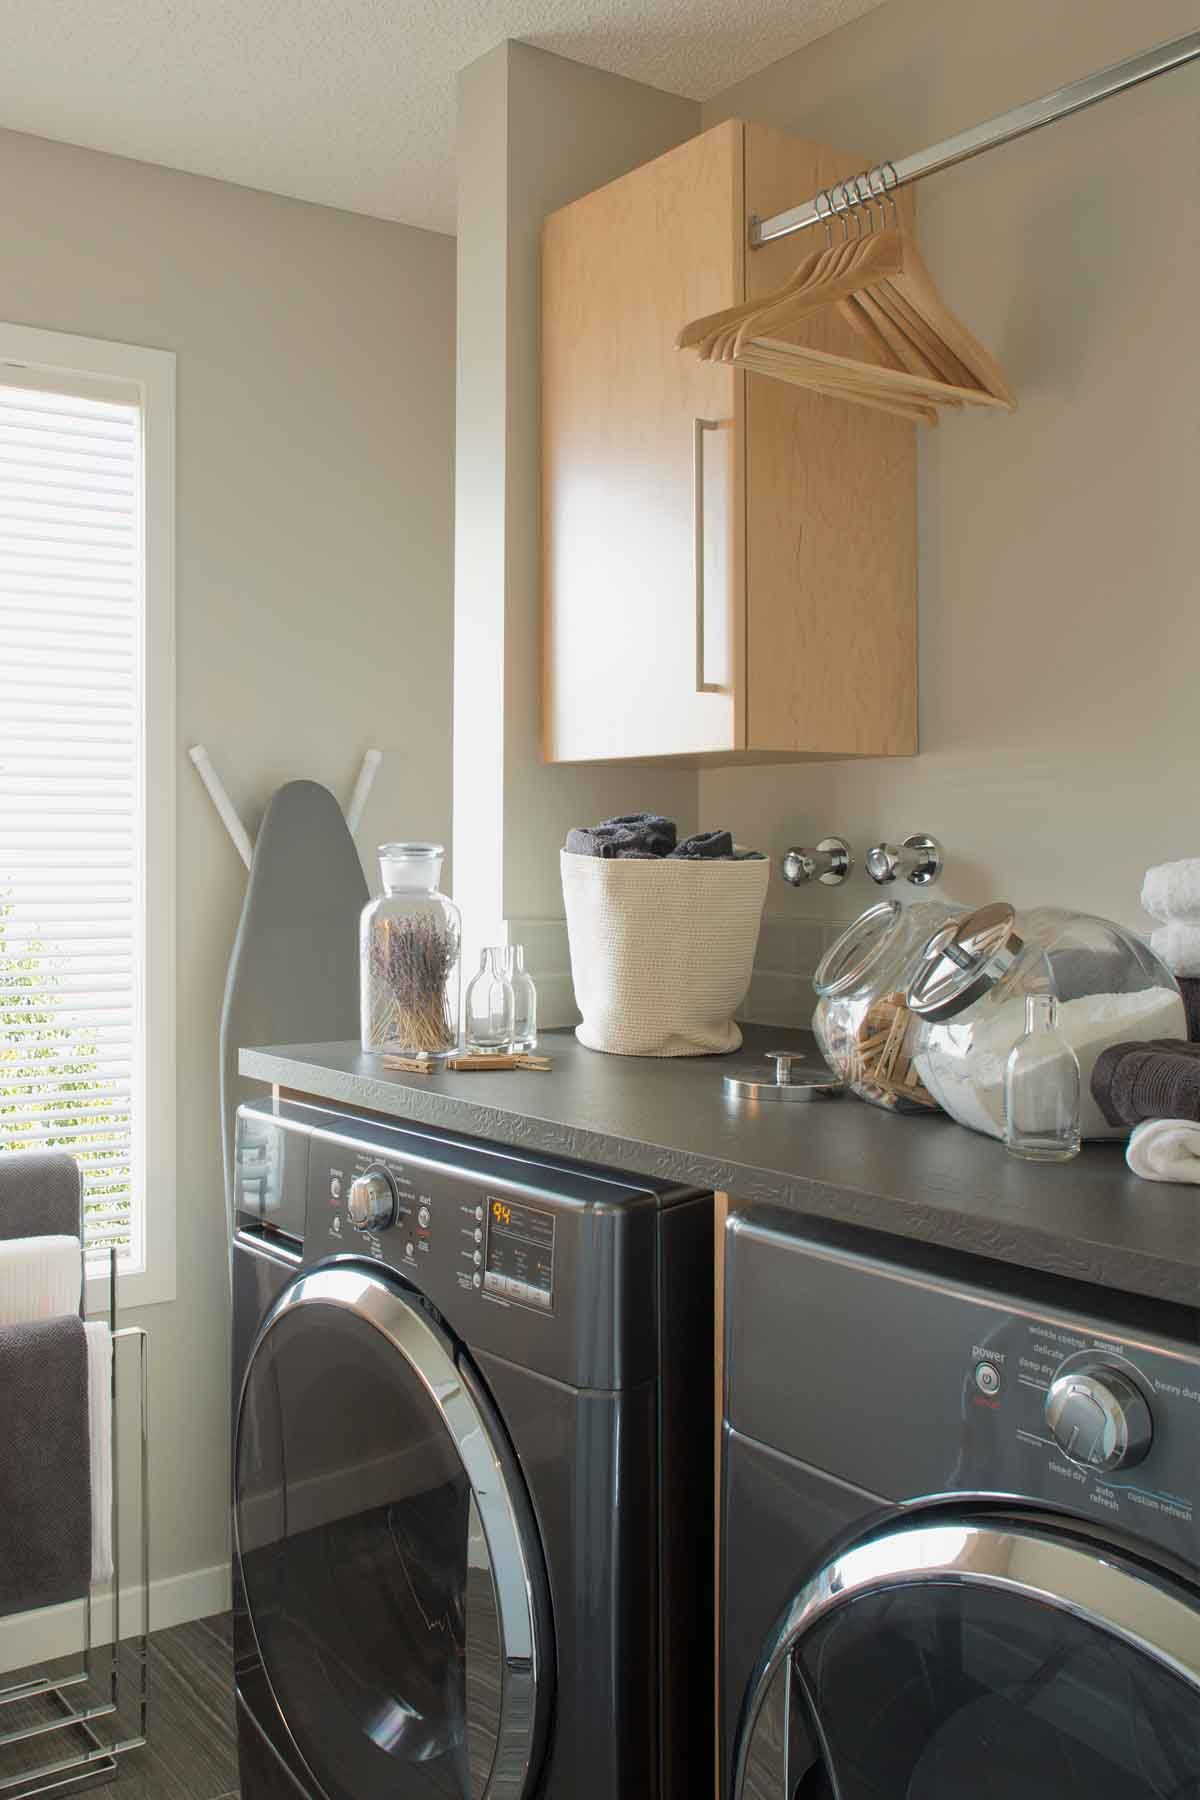 26 Laundry Room Storage and Organization Ideas - How To Organize